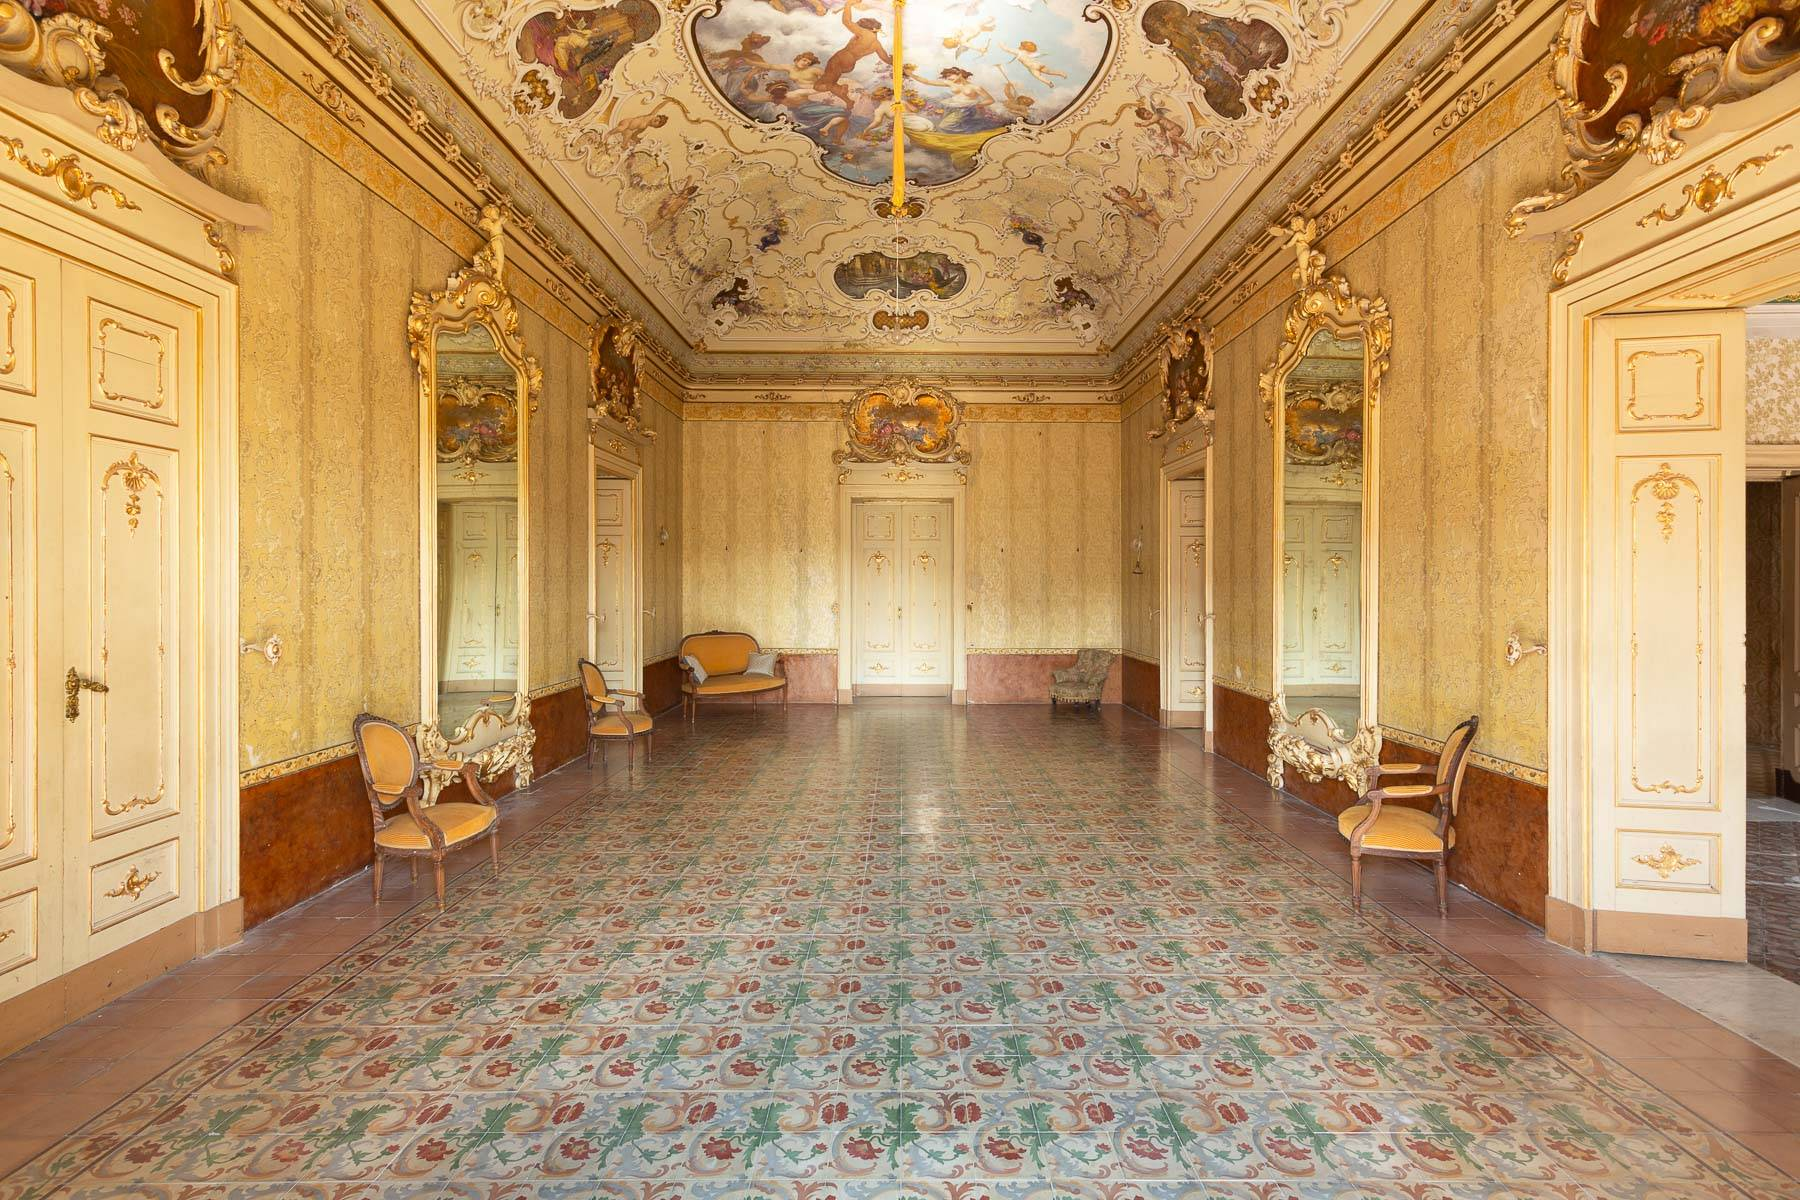 Noble Palace in Palazzolo Acreide - 3